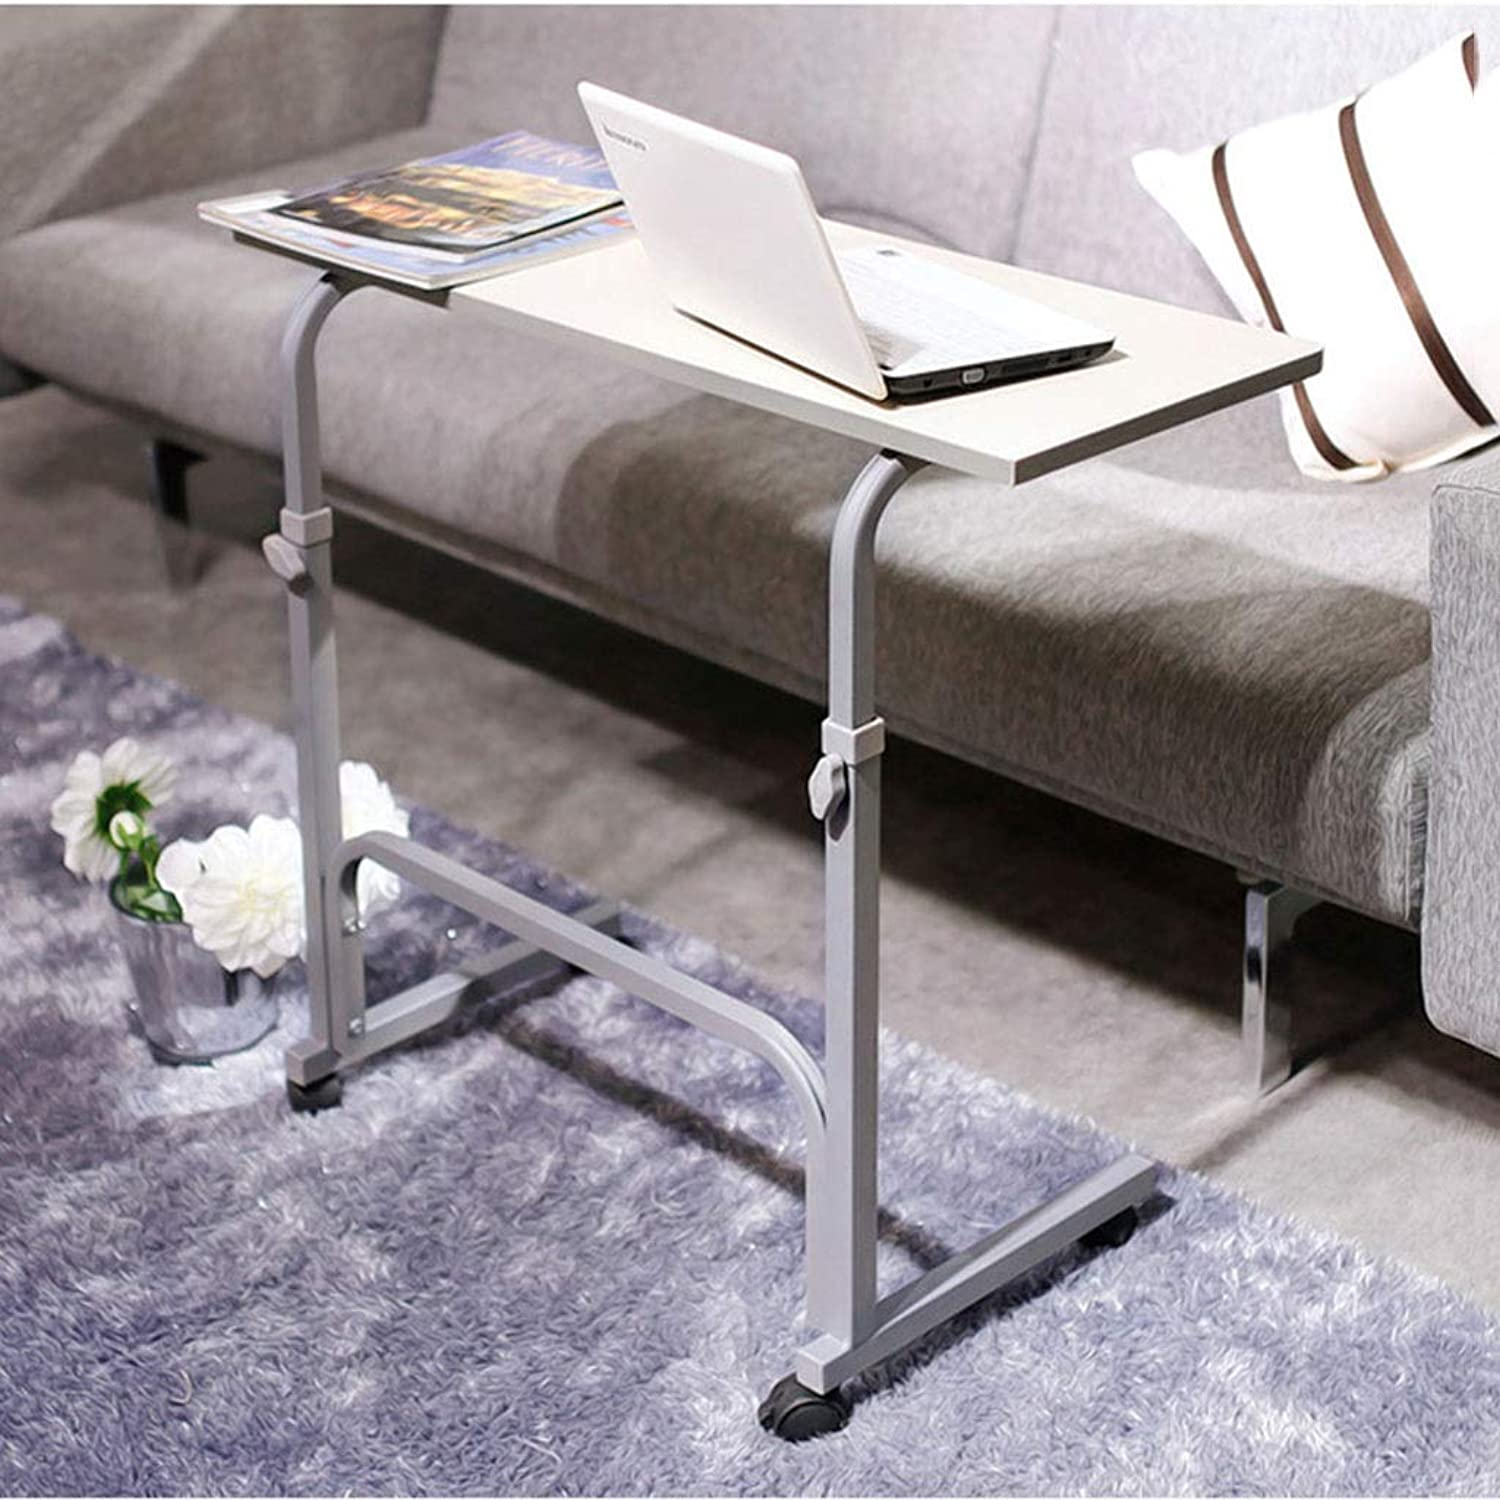 Side Tables Side Table Multi-Function Computer Table Lazy Table Home Living Room Sofa Side Table Writing Desk Bedroom Bedside Table Coffee Table Movable Table Tables